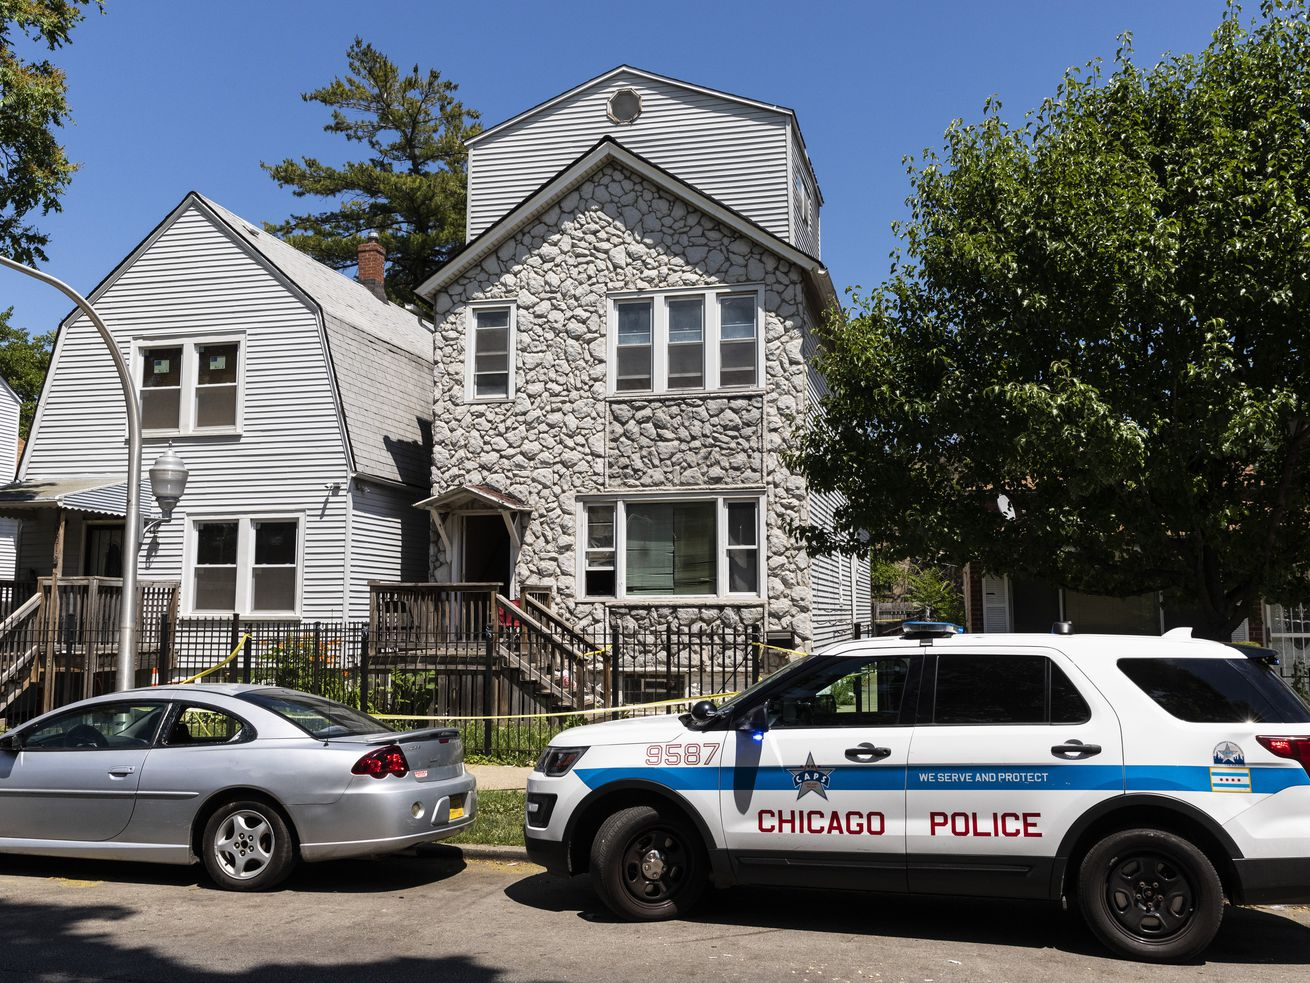 For more than a year, city sought security improvements at Englewood home where 8 people were shot. Yet nothing was done